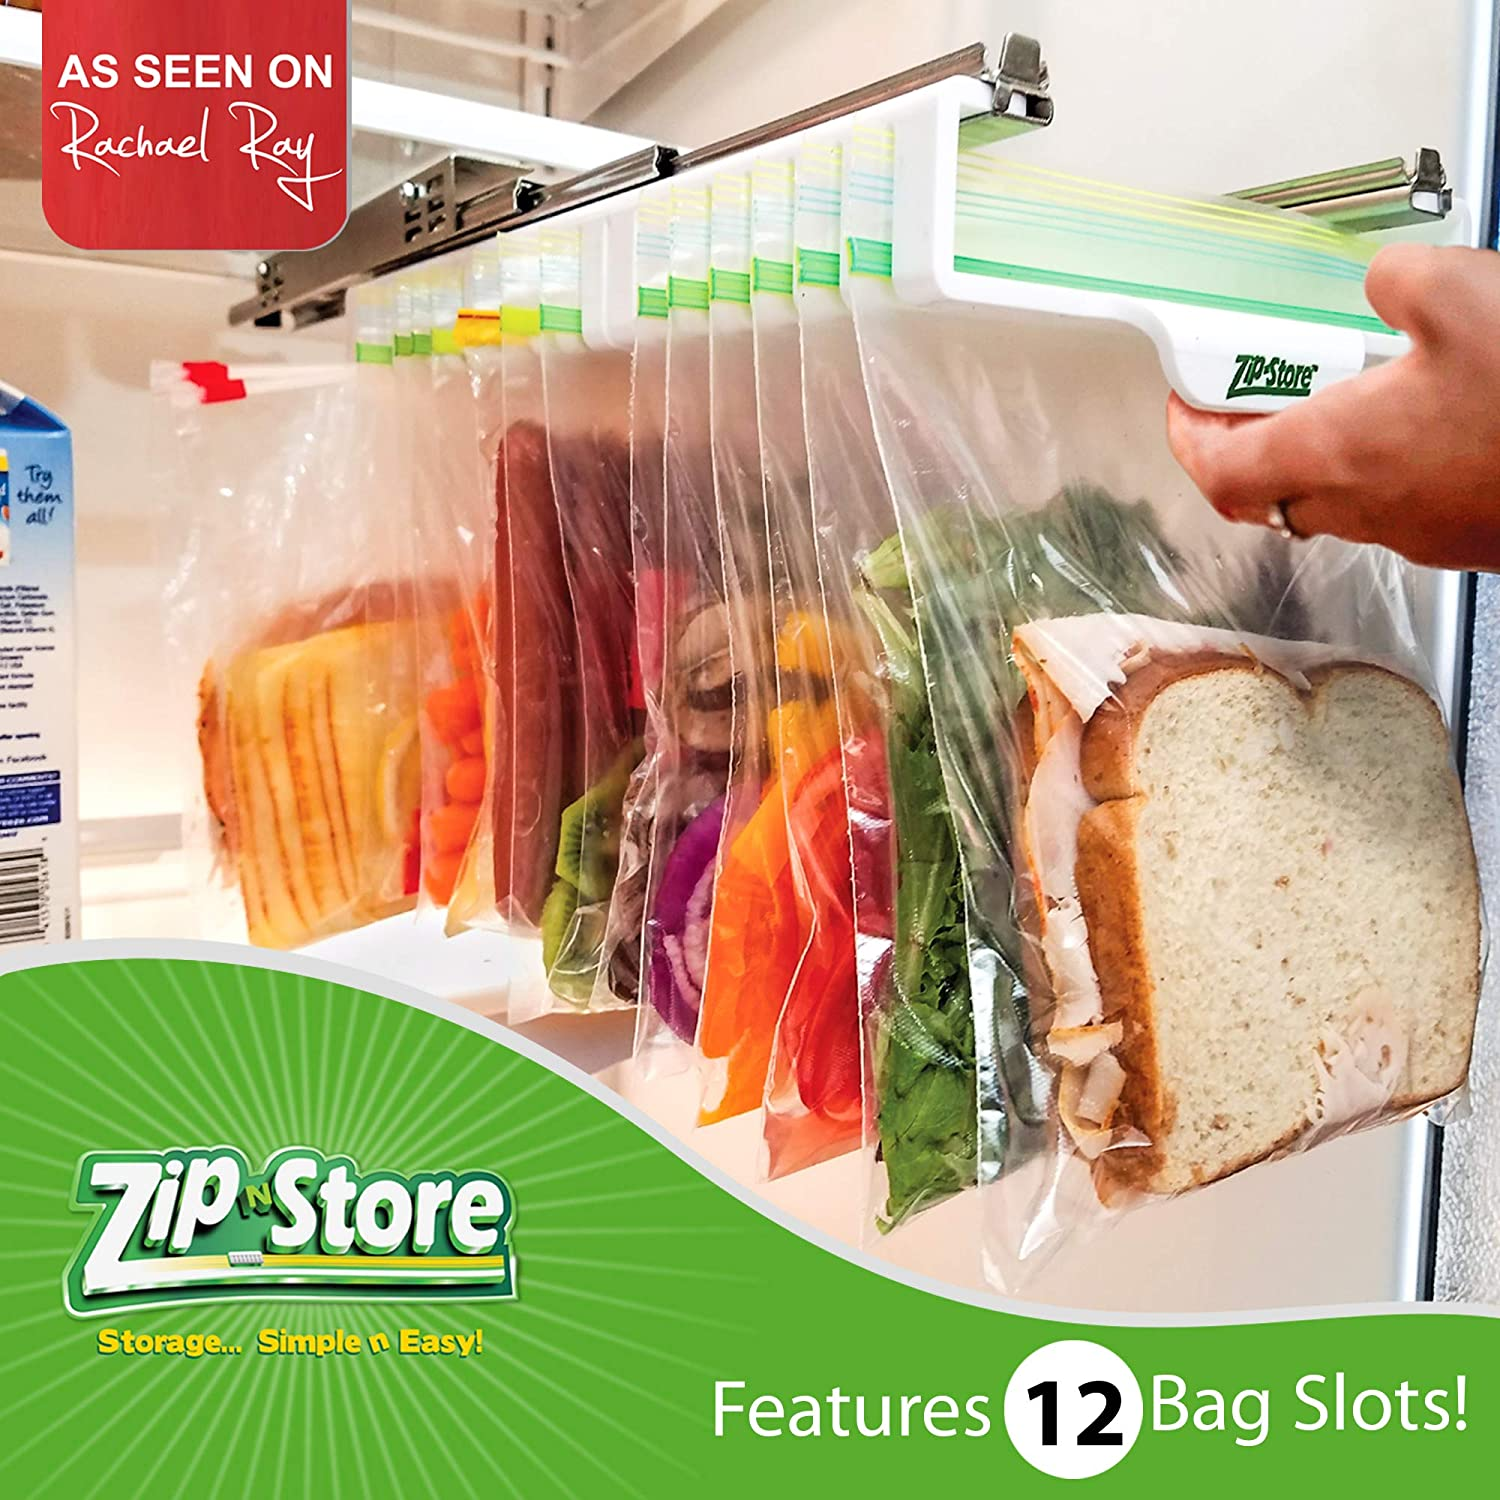 Zip n Store - Organize Your Refrigerator - Mid-Size Easy Store Organizer - Organizes 12 Bags, Perfect For Leftovers, Easy To See + Access Food, Quick Access Slide Track, Installs In 2 Minutes